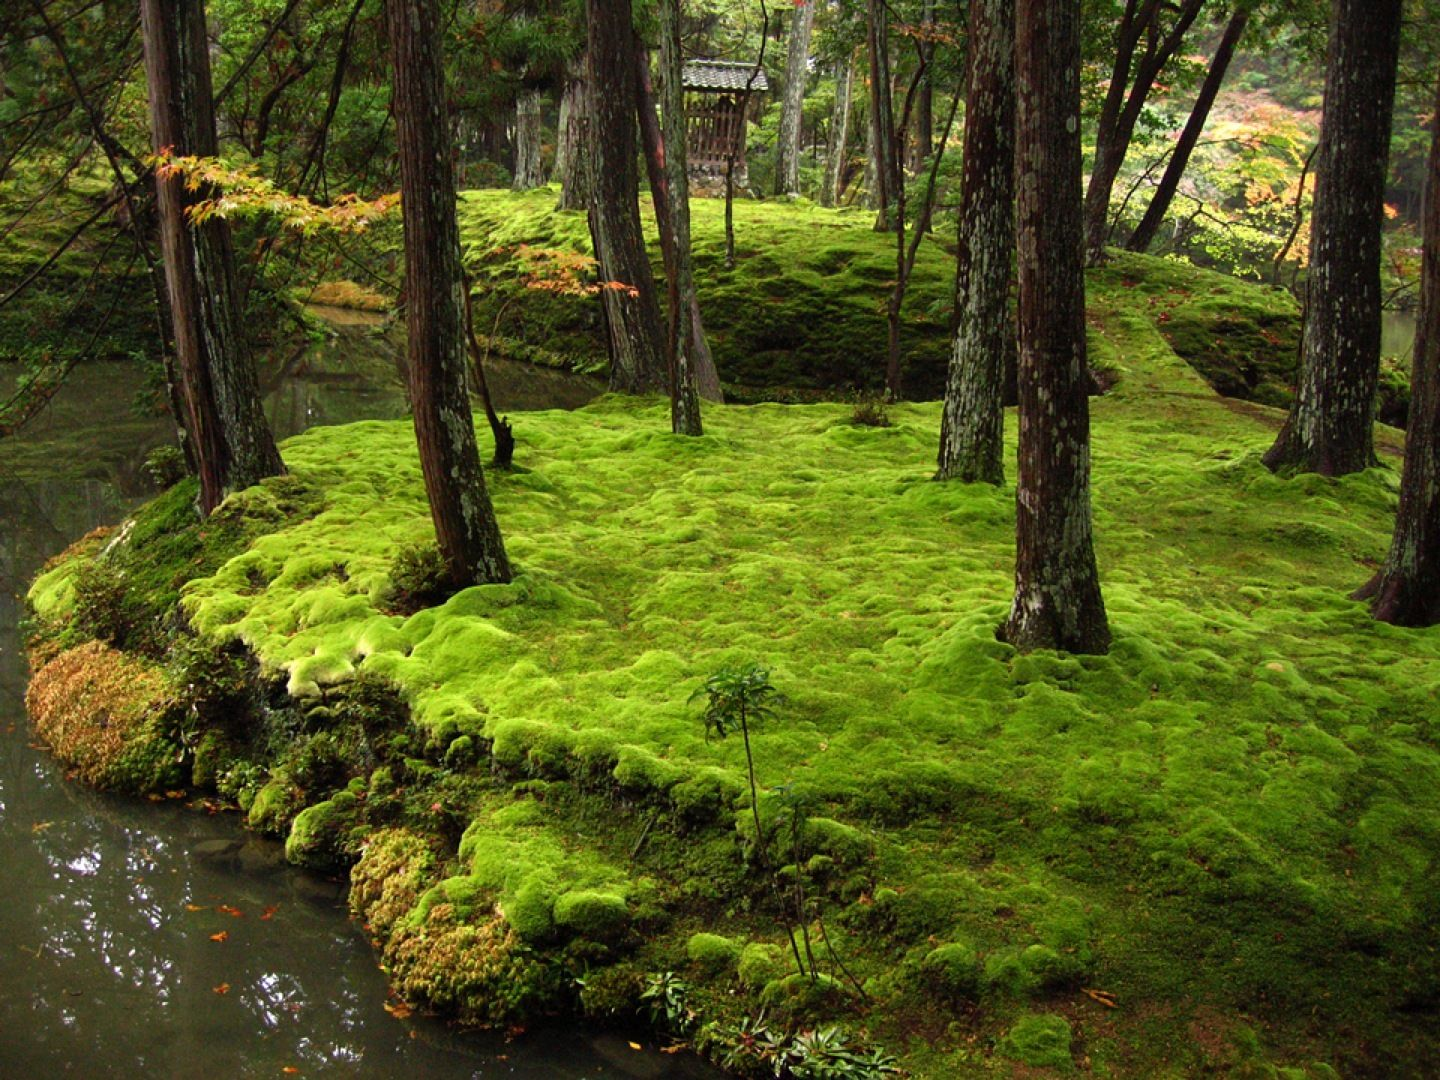 Ancient japanese gardens - Ancient Japanese Gardens Its Moss Garden Is Commonly Referred To As